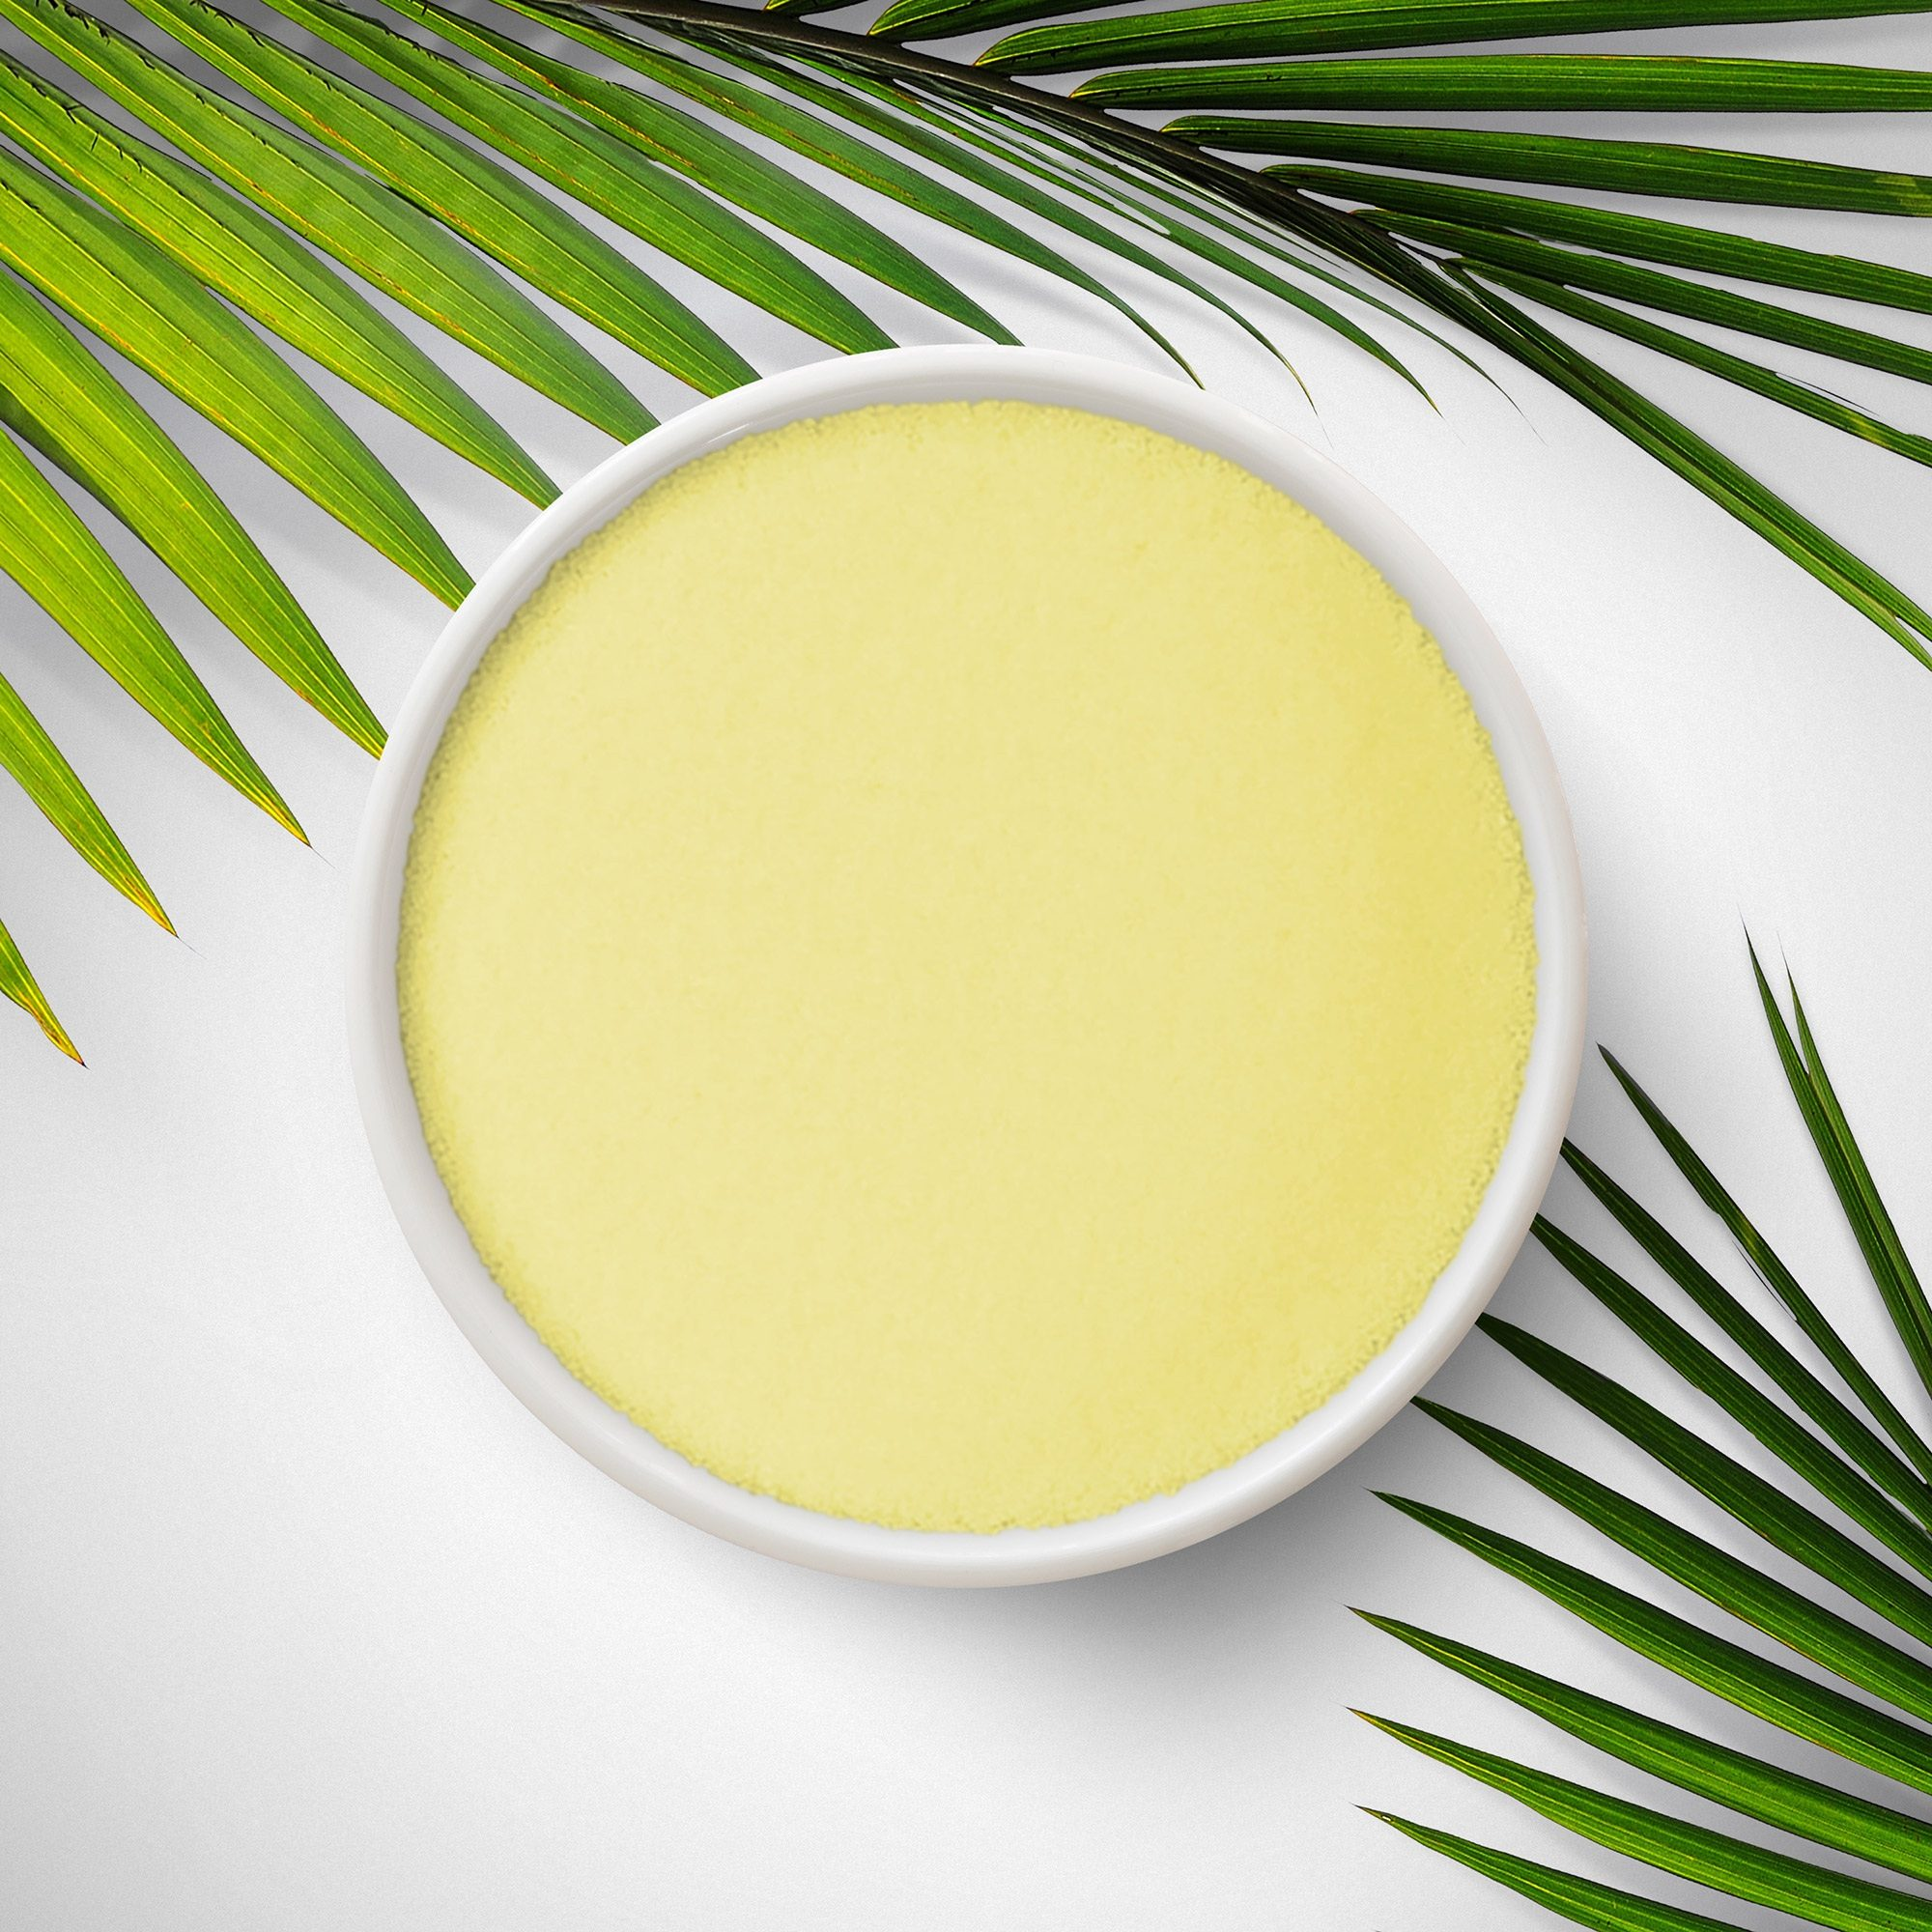 Yellow fine powder in a small white bowl with palm leaves on the edge.